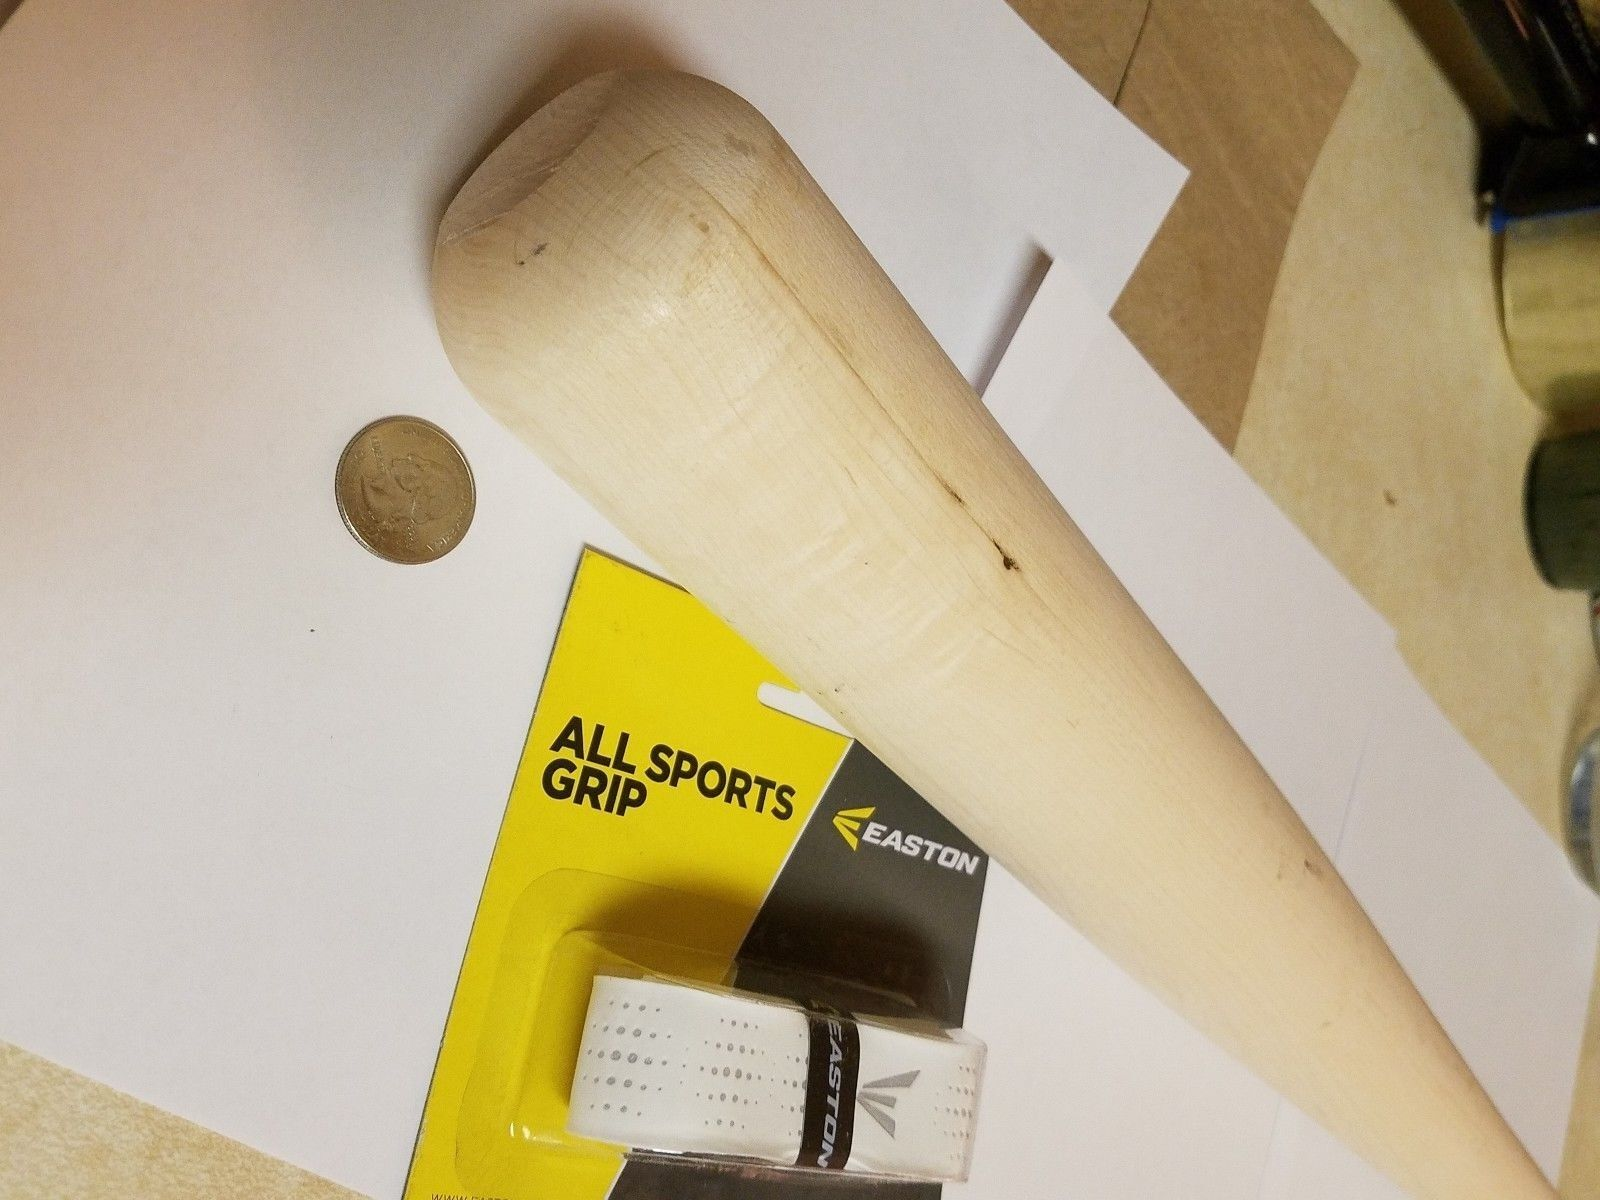 34  Game Ready Unfinished  Naked  Solid Maple Baseball Bat W Easton grip. DIY